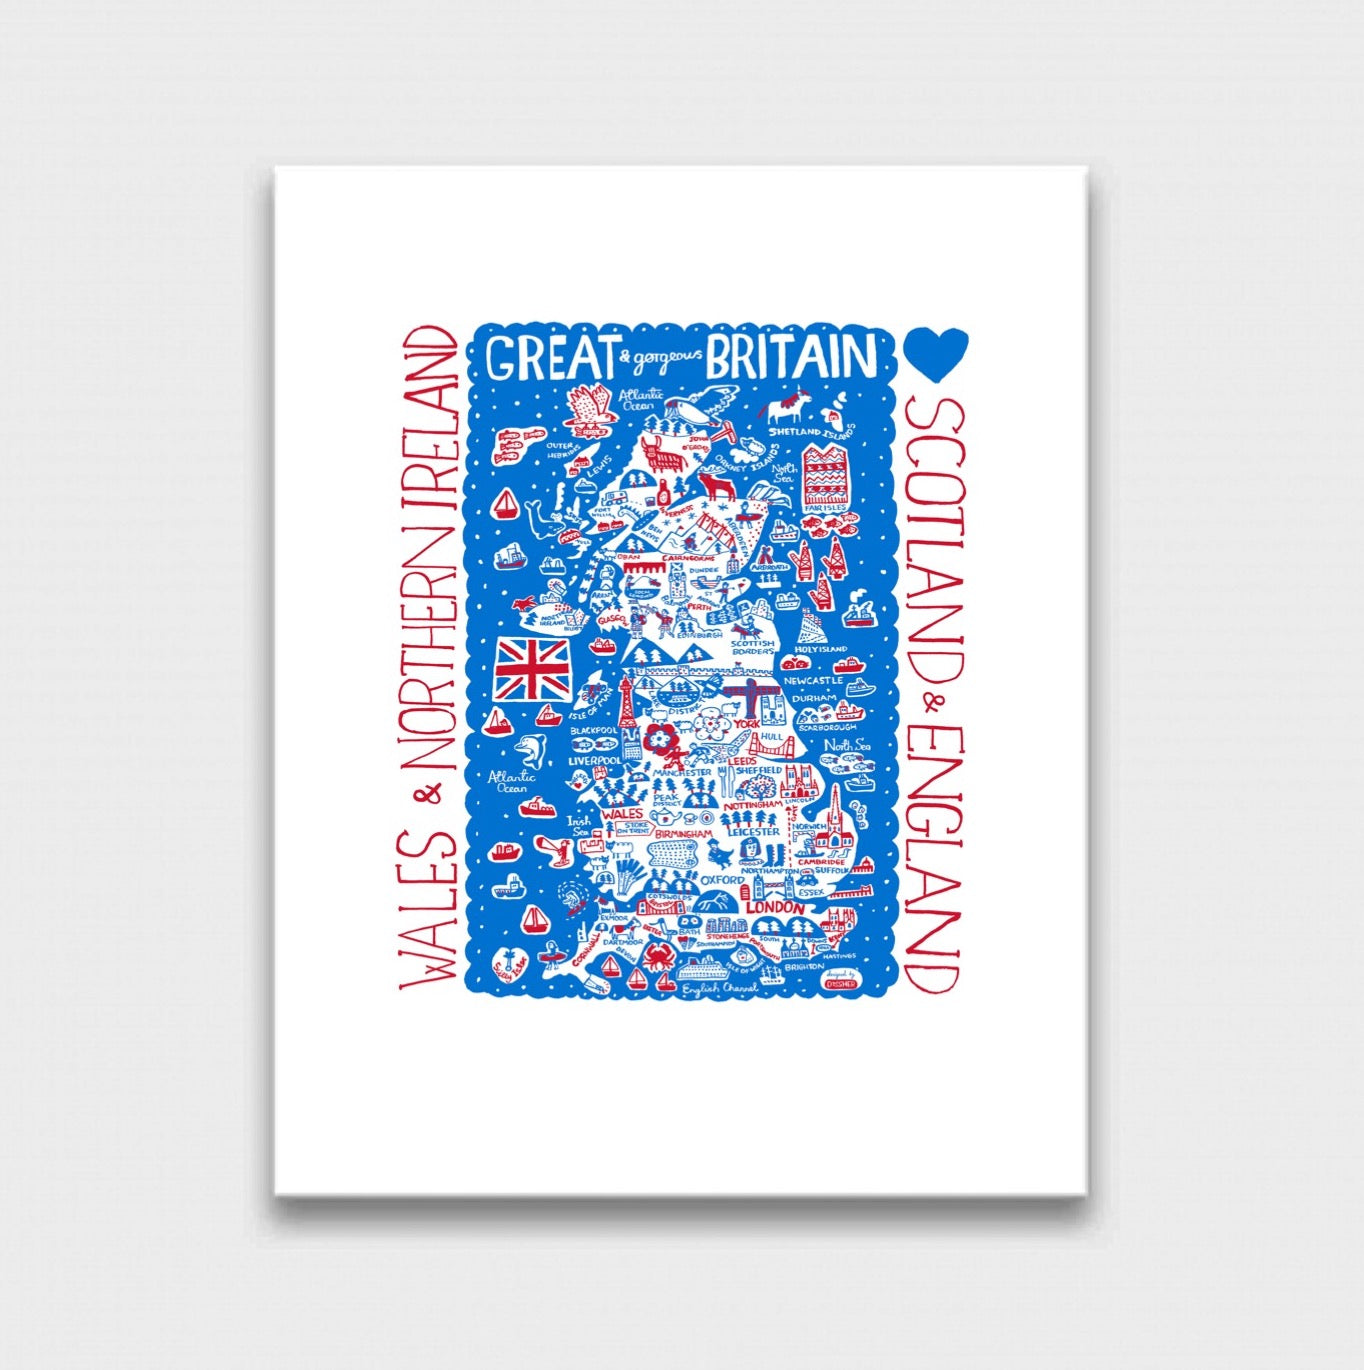 Great Britain by Dasher Art Print - Julia Gash